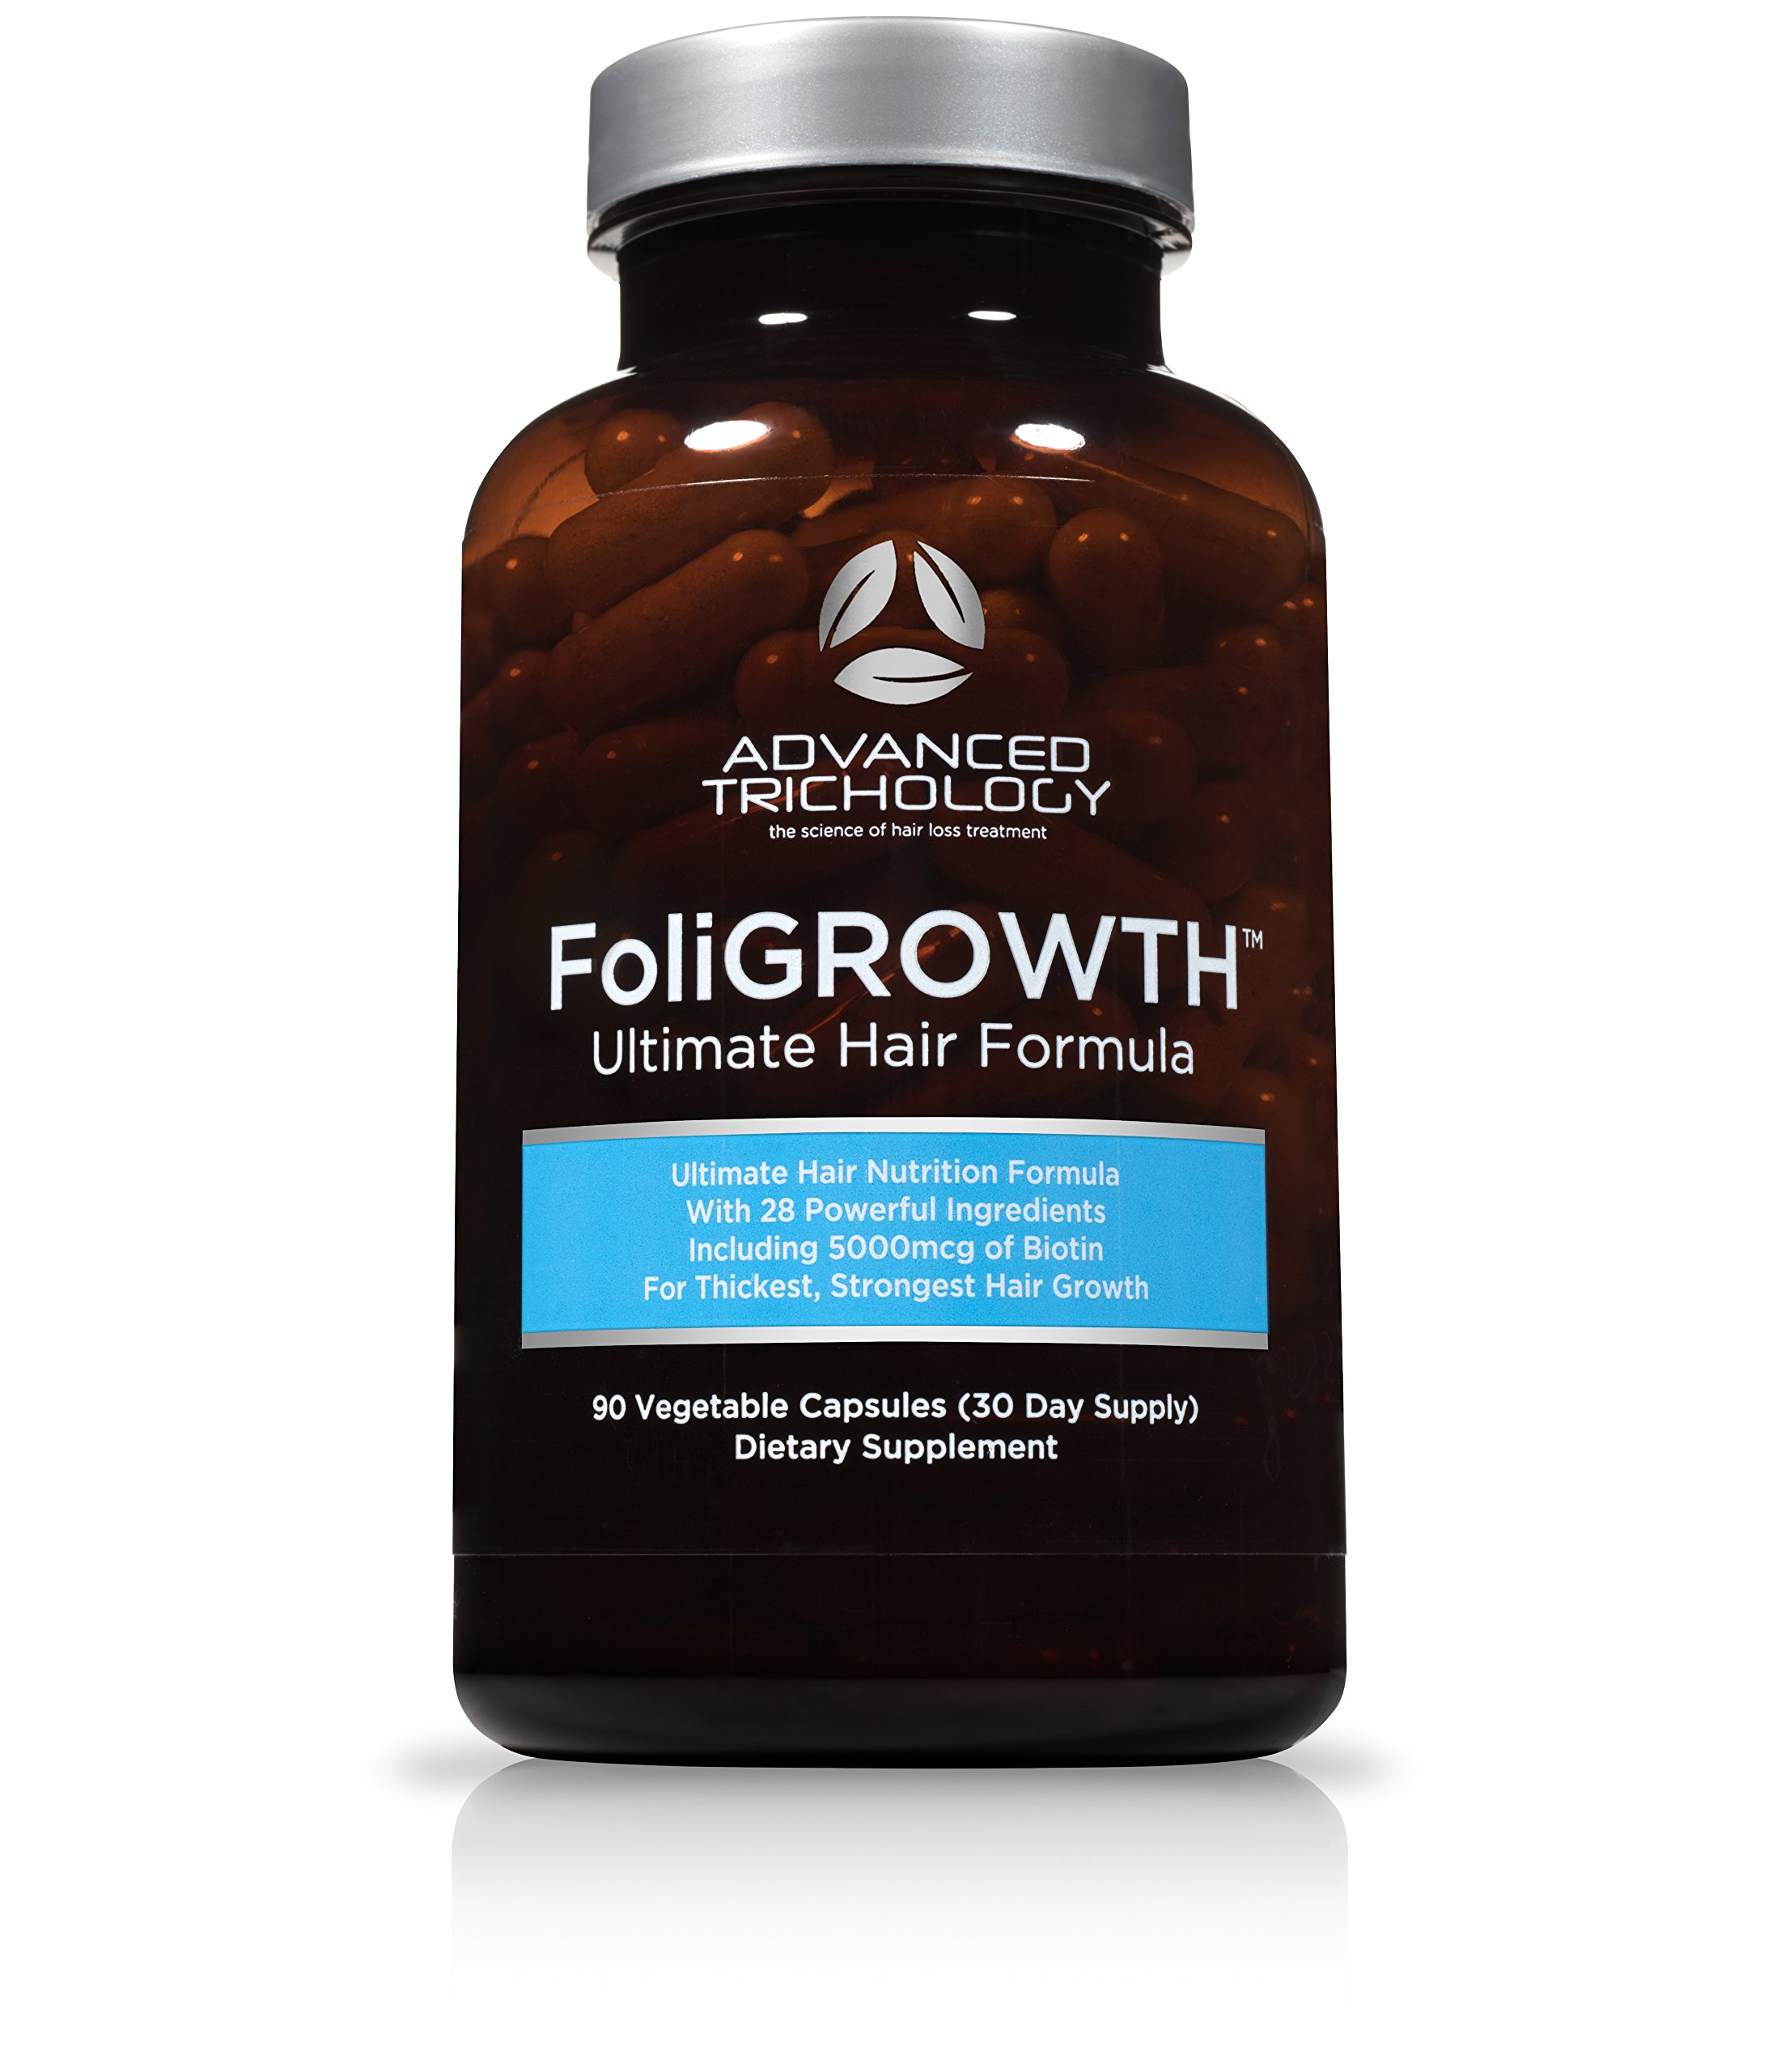 FoliGROWTH Ultimate Hair Growth Vitamin - Gluten Free, Vegan Formula, 3rd Party Tested - with High Potency Biotin, Stop Hair Loss - Get Thickest Strongest Hair Growth Guaranteed